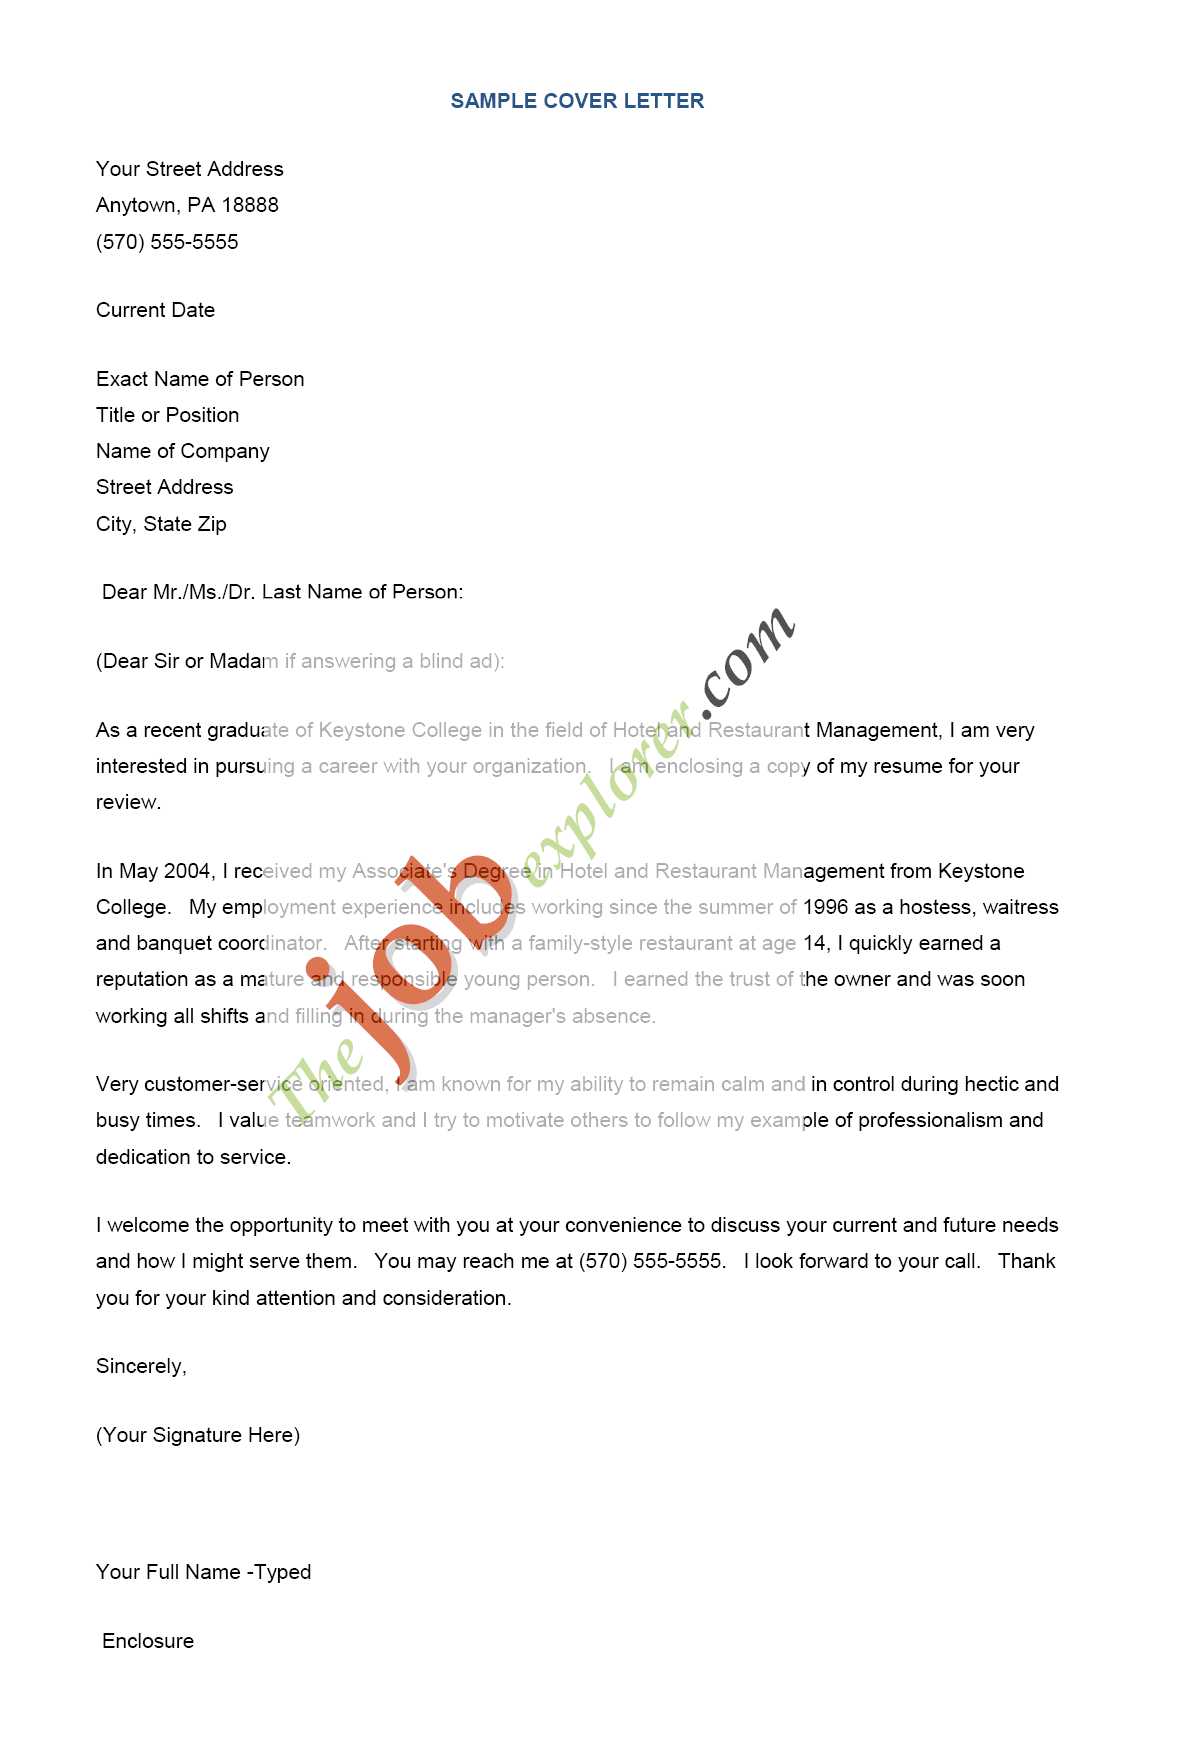 How To Write A Cover Letter For A Resume Alluring Job Resume Cover Letter Example Sample Letters For Jobs Decorating Inspiration